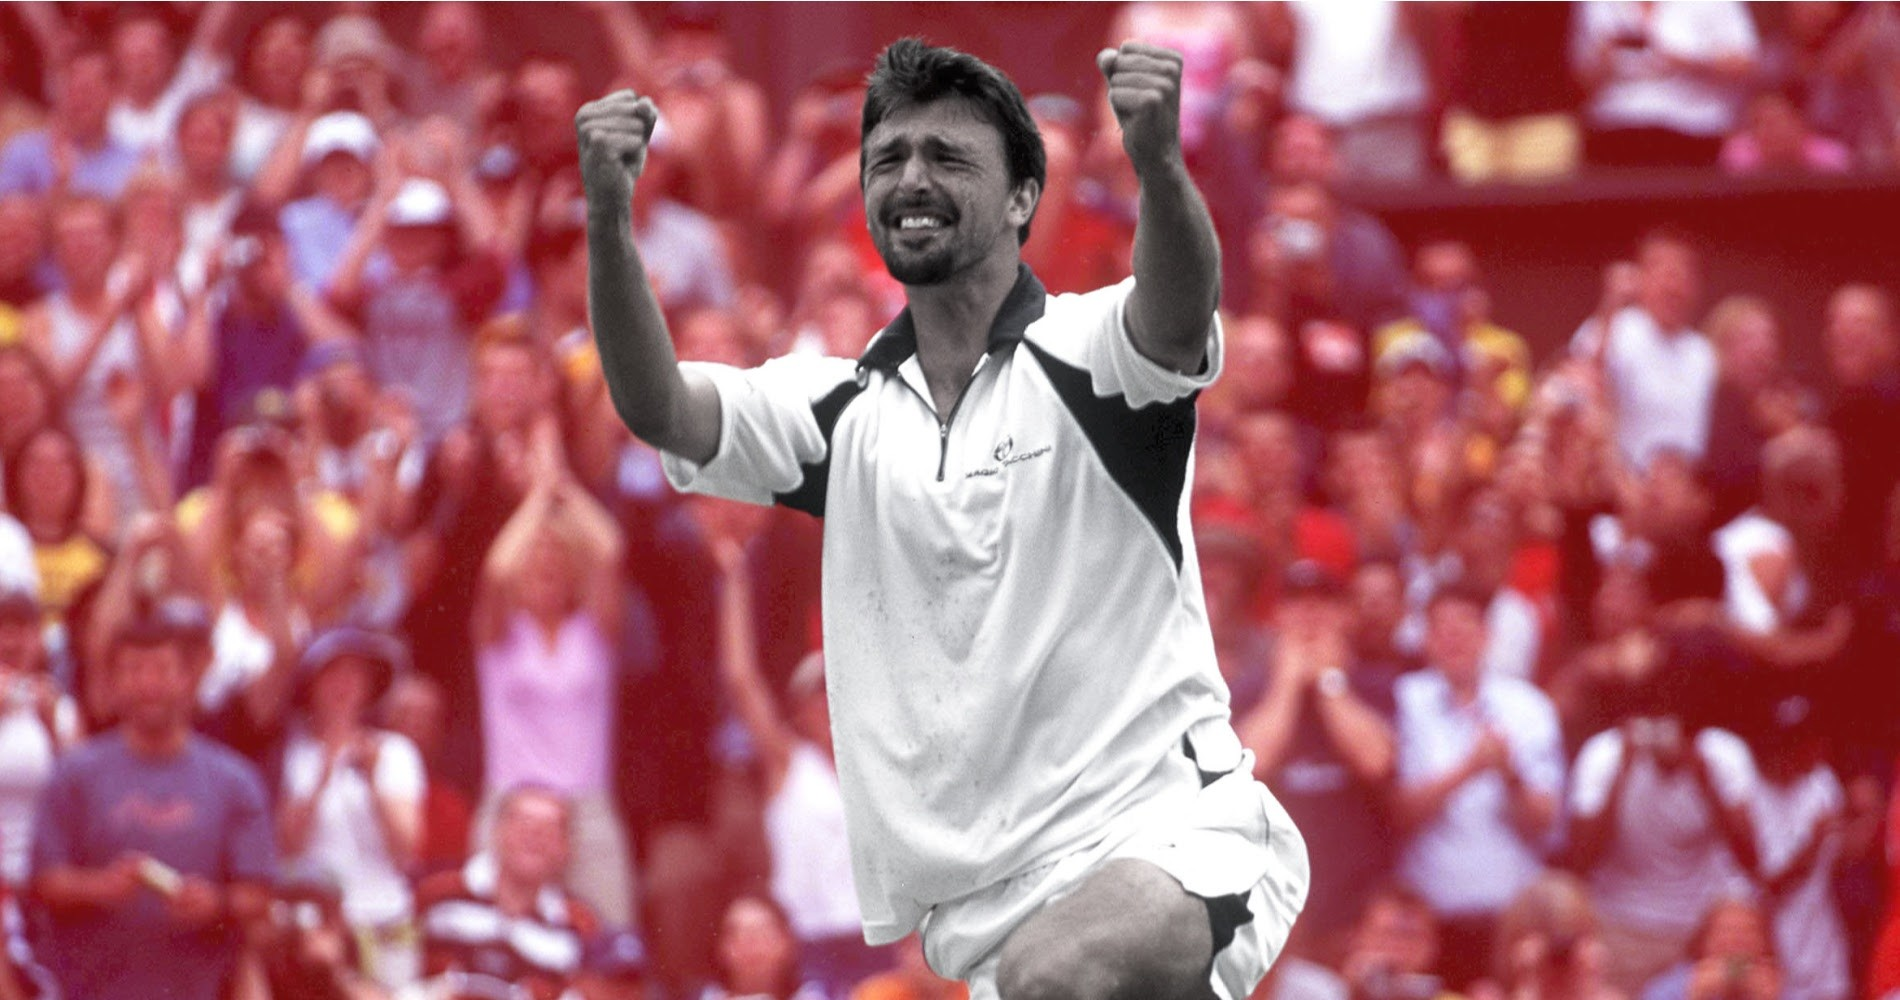 Goran Ivanisevic On this Day 2001